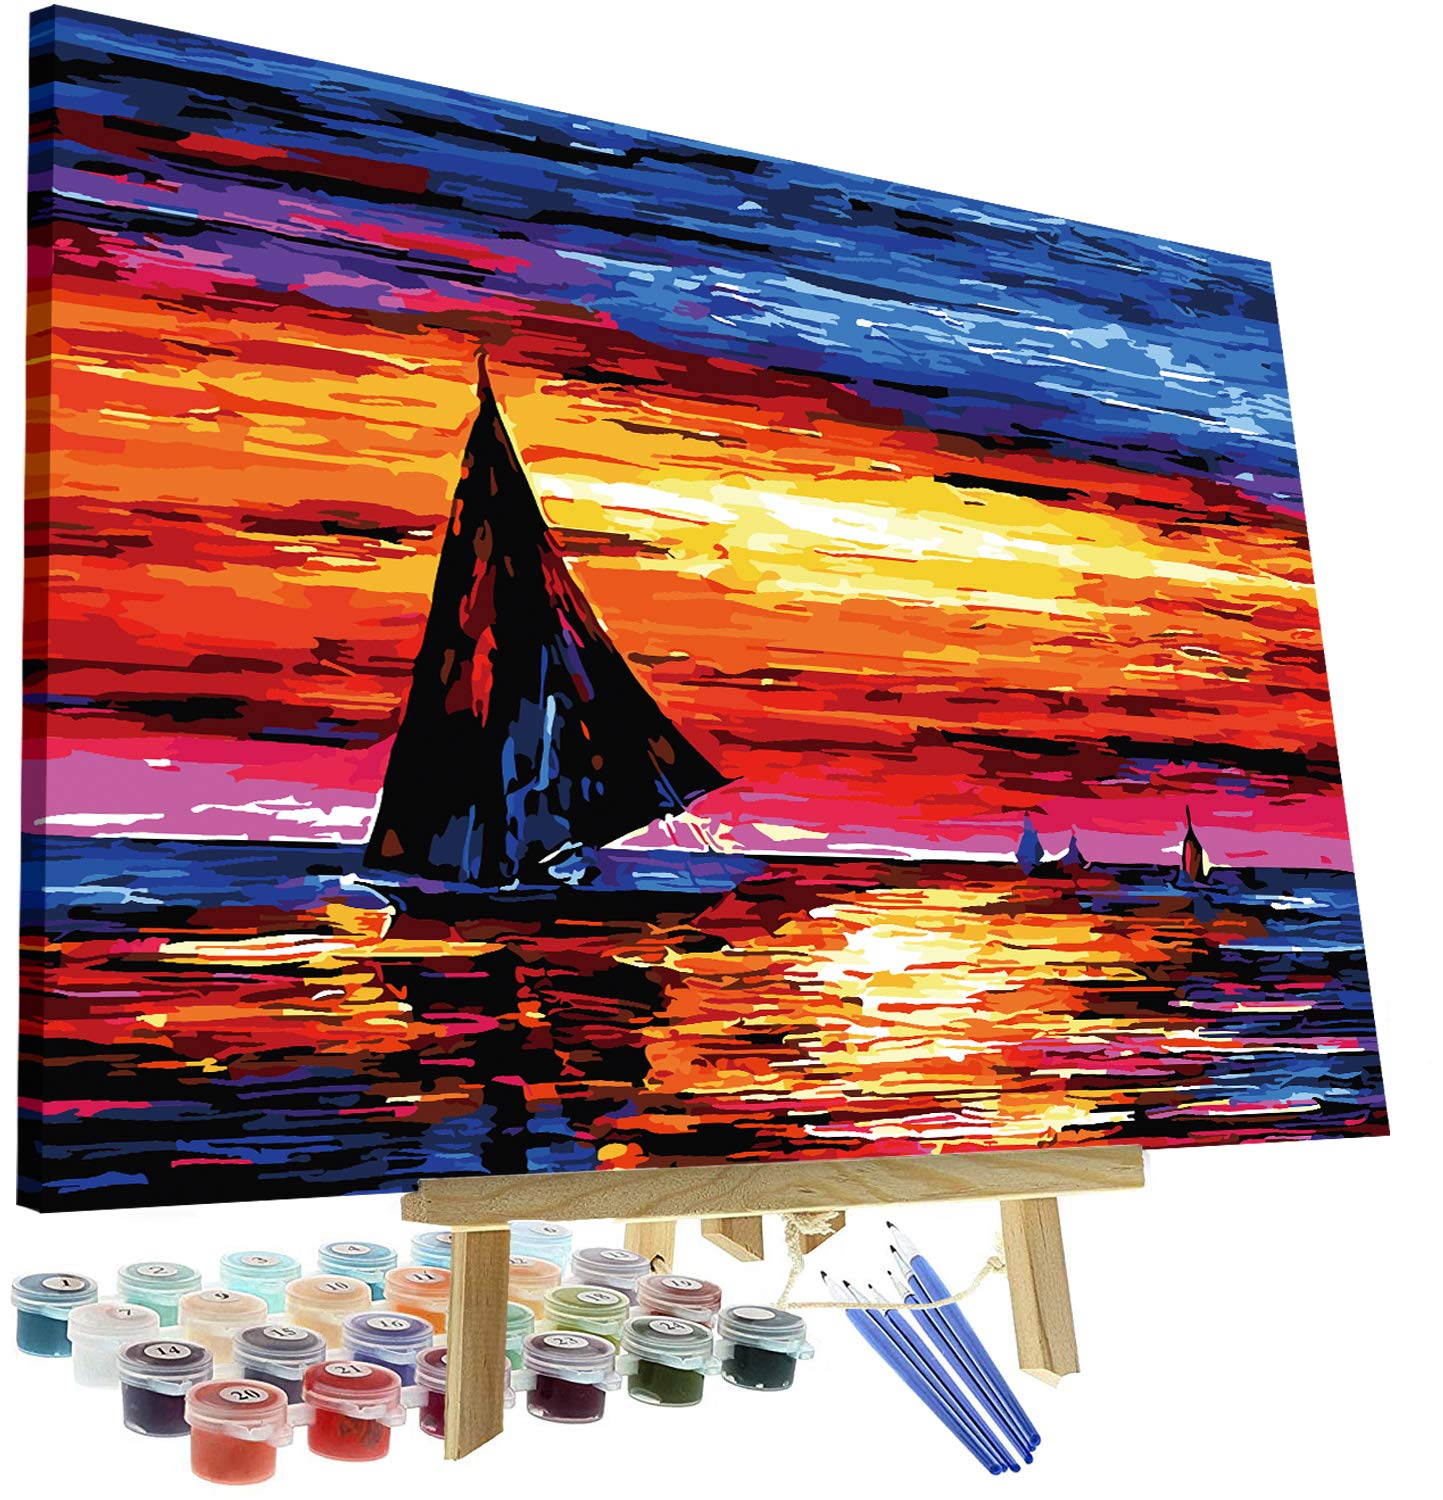 "DIY Oil Painting Paint by Numbers Kit for Adults Kids Beginner - Sailboat Sunset 12""x16"" with Wooden Frame and Easel"